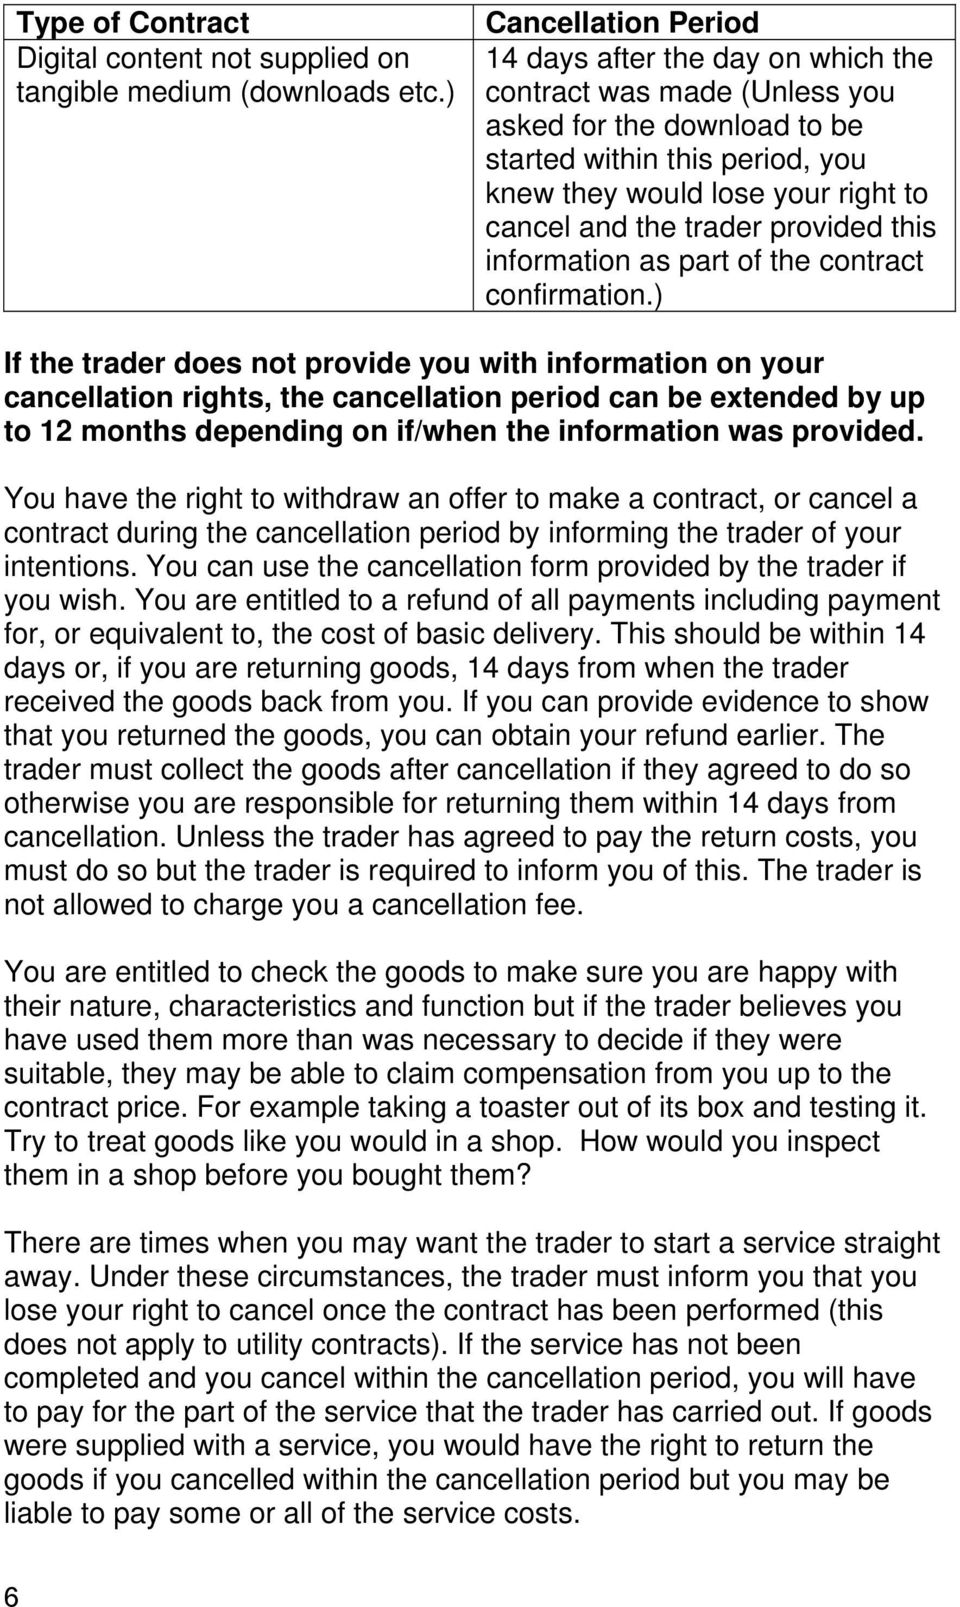 trader provided this information as part of the contract confirmation.